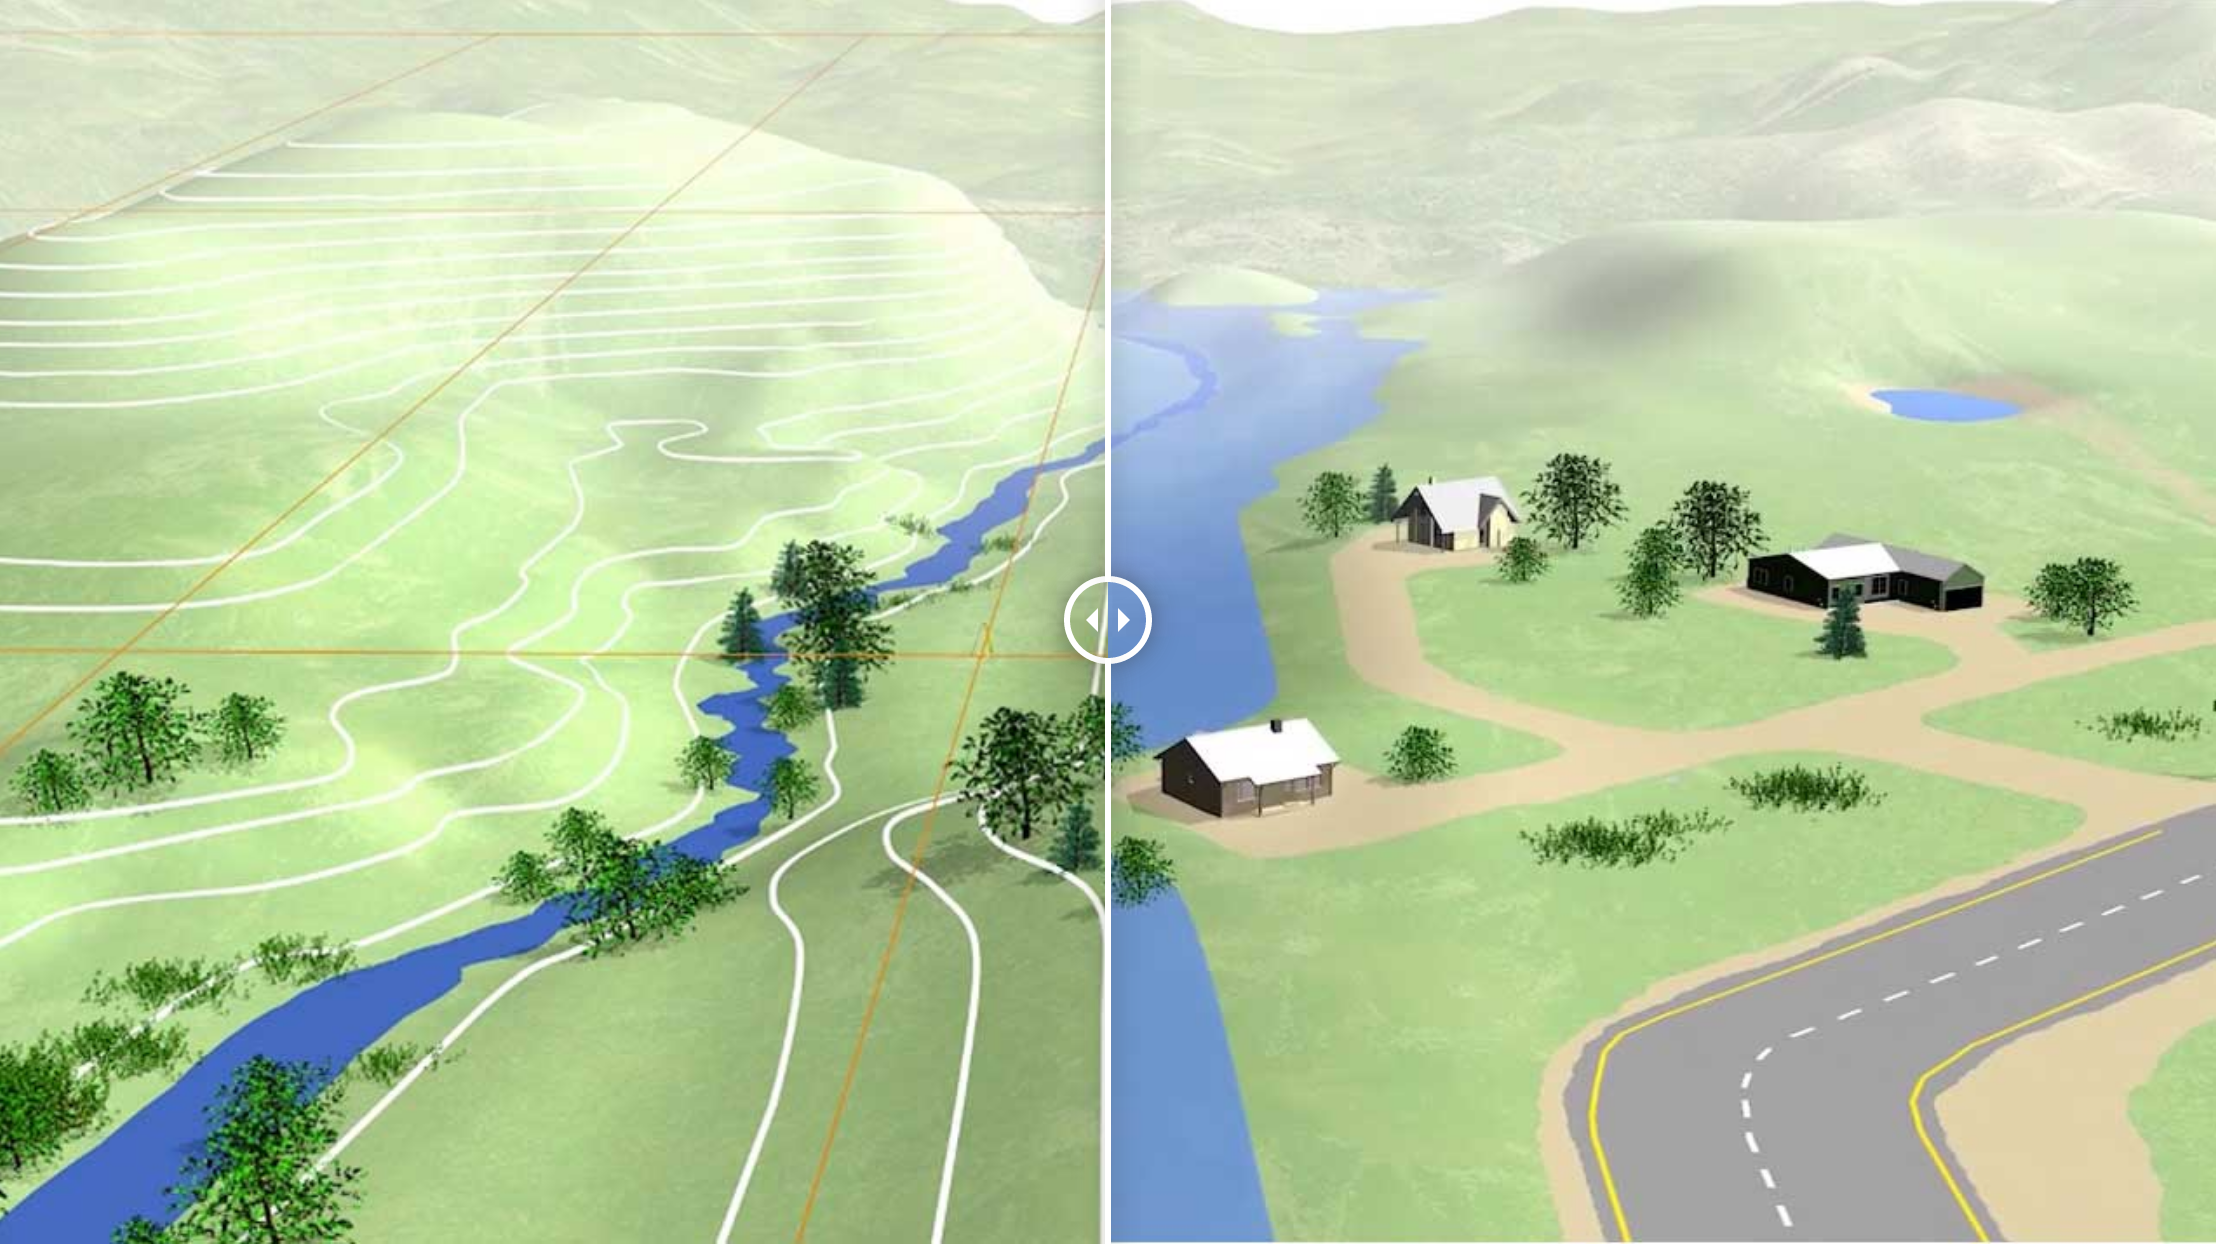 Fig. 1: Visualisation depicting a valley and several houses before and after a flooding event, illustrating how accurate heights are needed to understand how water flows across the land.